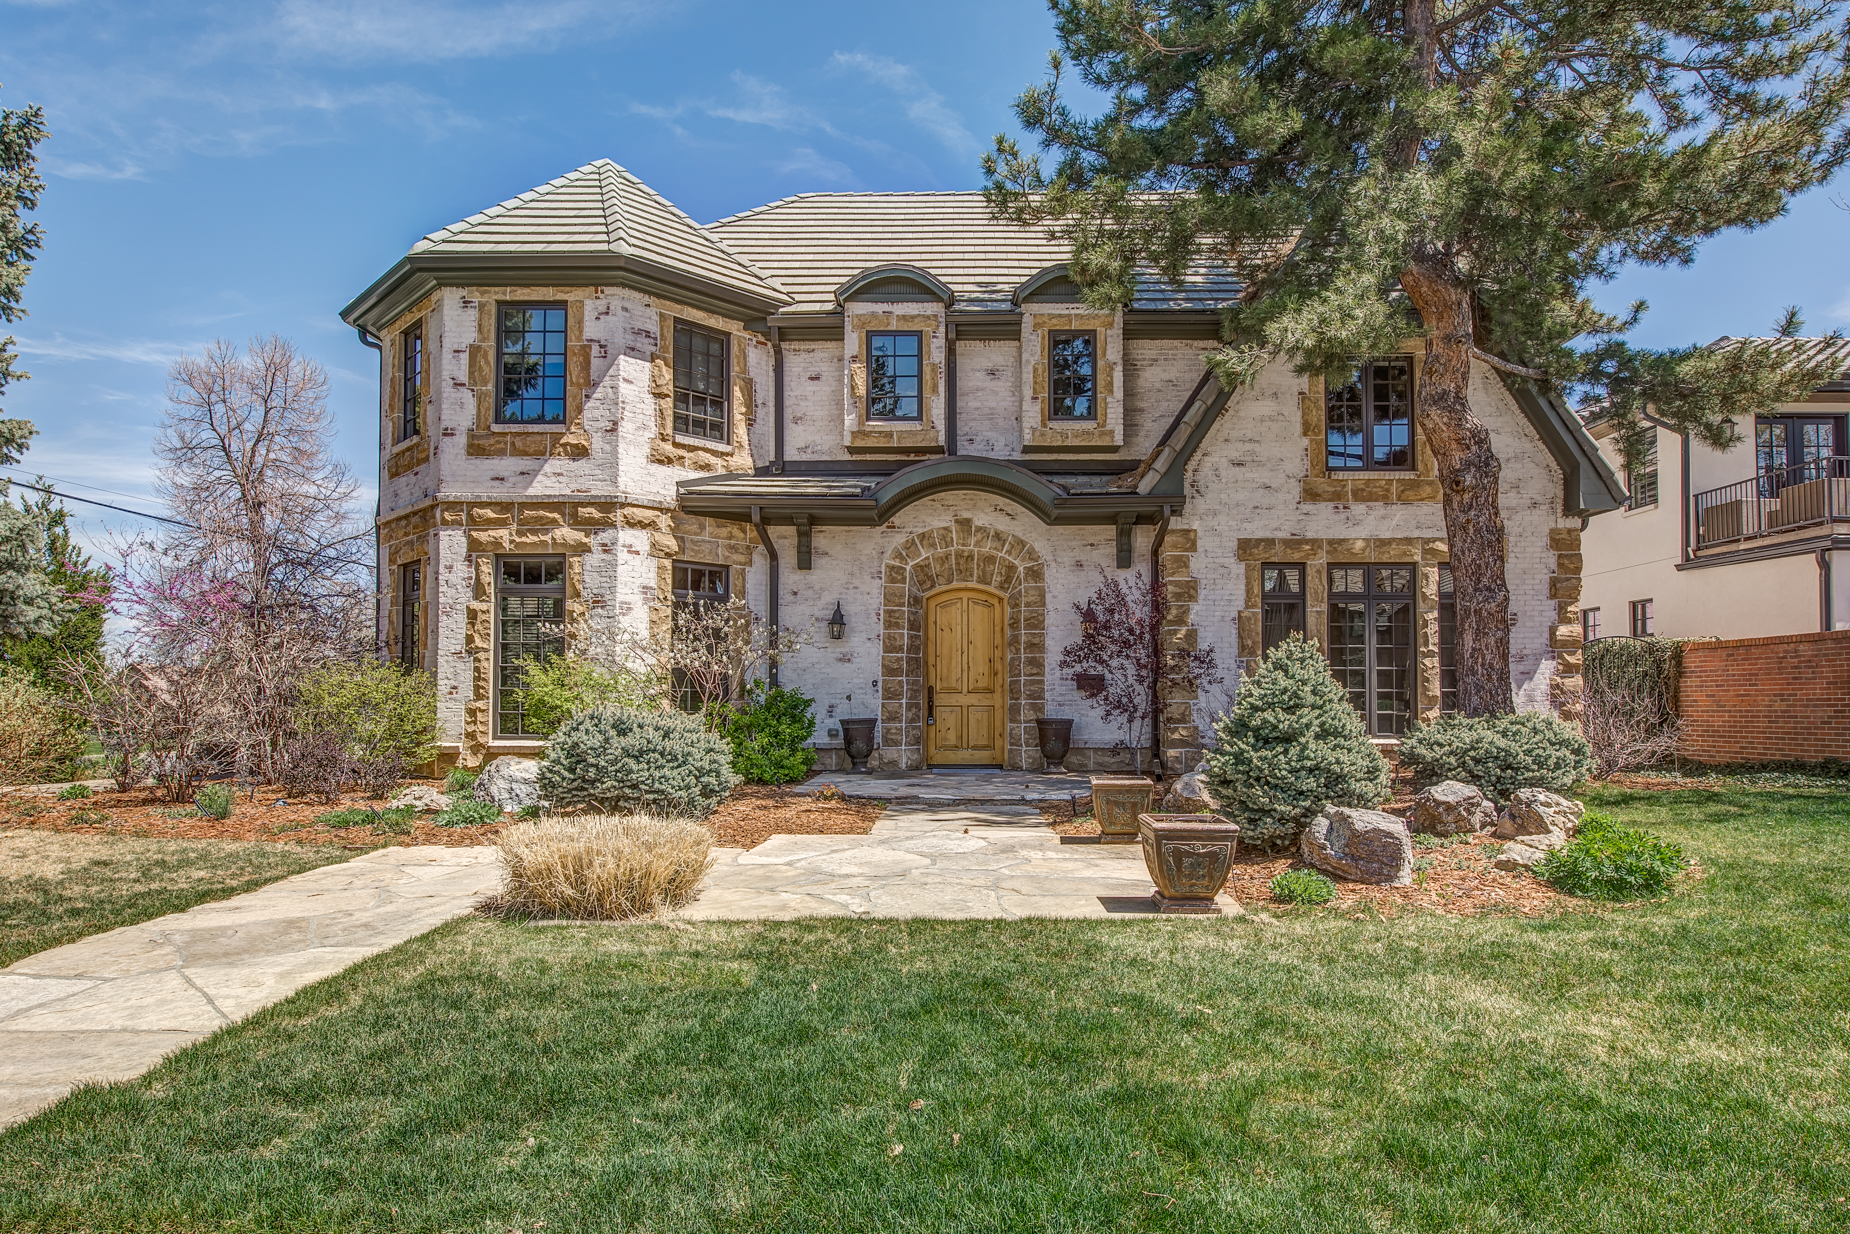 Single Family Home for Sale at Across from the Park 170 Forest Street Hilltop, Denver, Colorado, 80220 United States